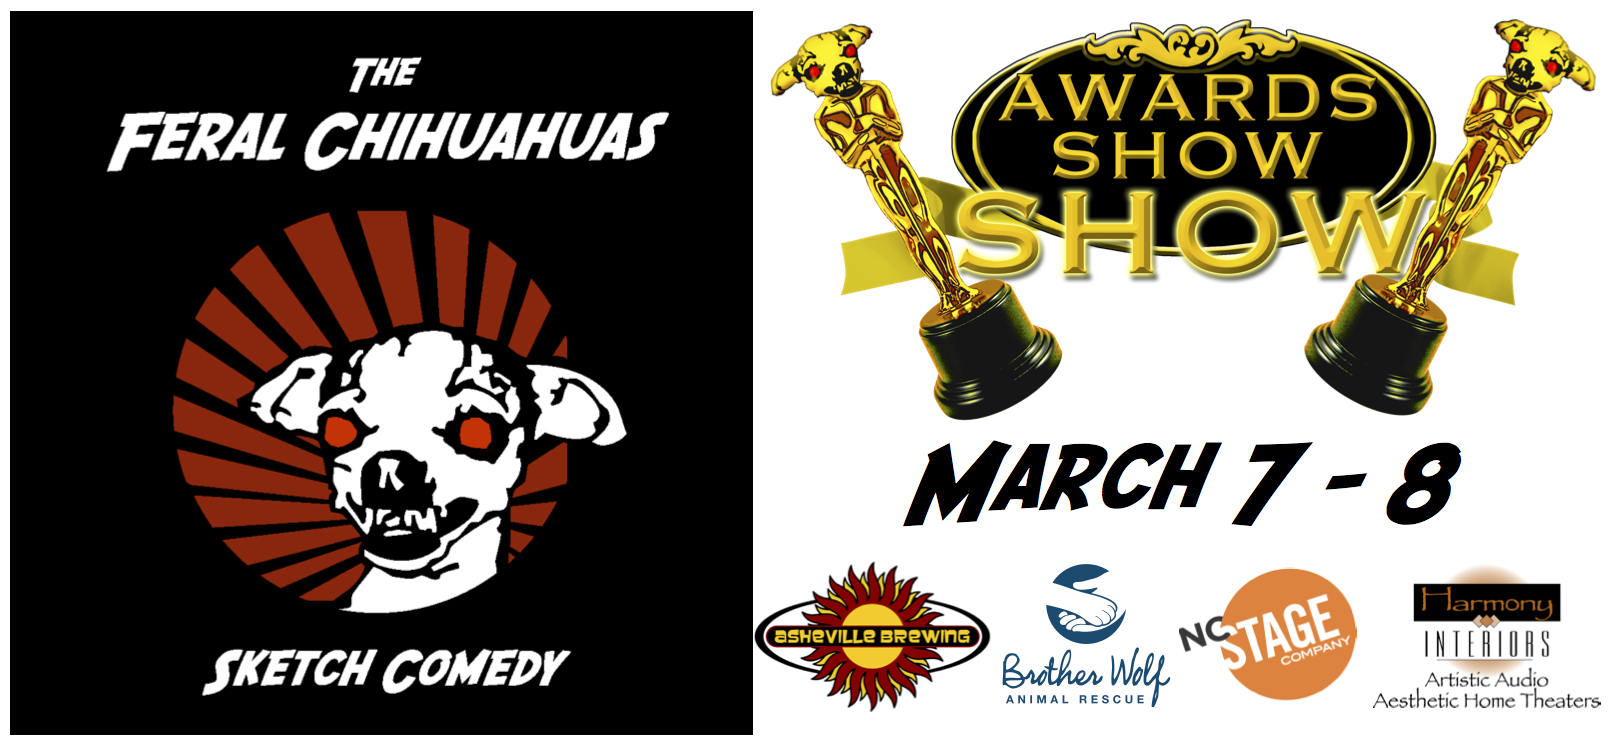 The Feral Chihuahuas celebrate 10 years of comedy in Asheville with shows March 7, 8